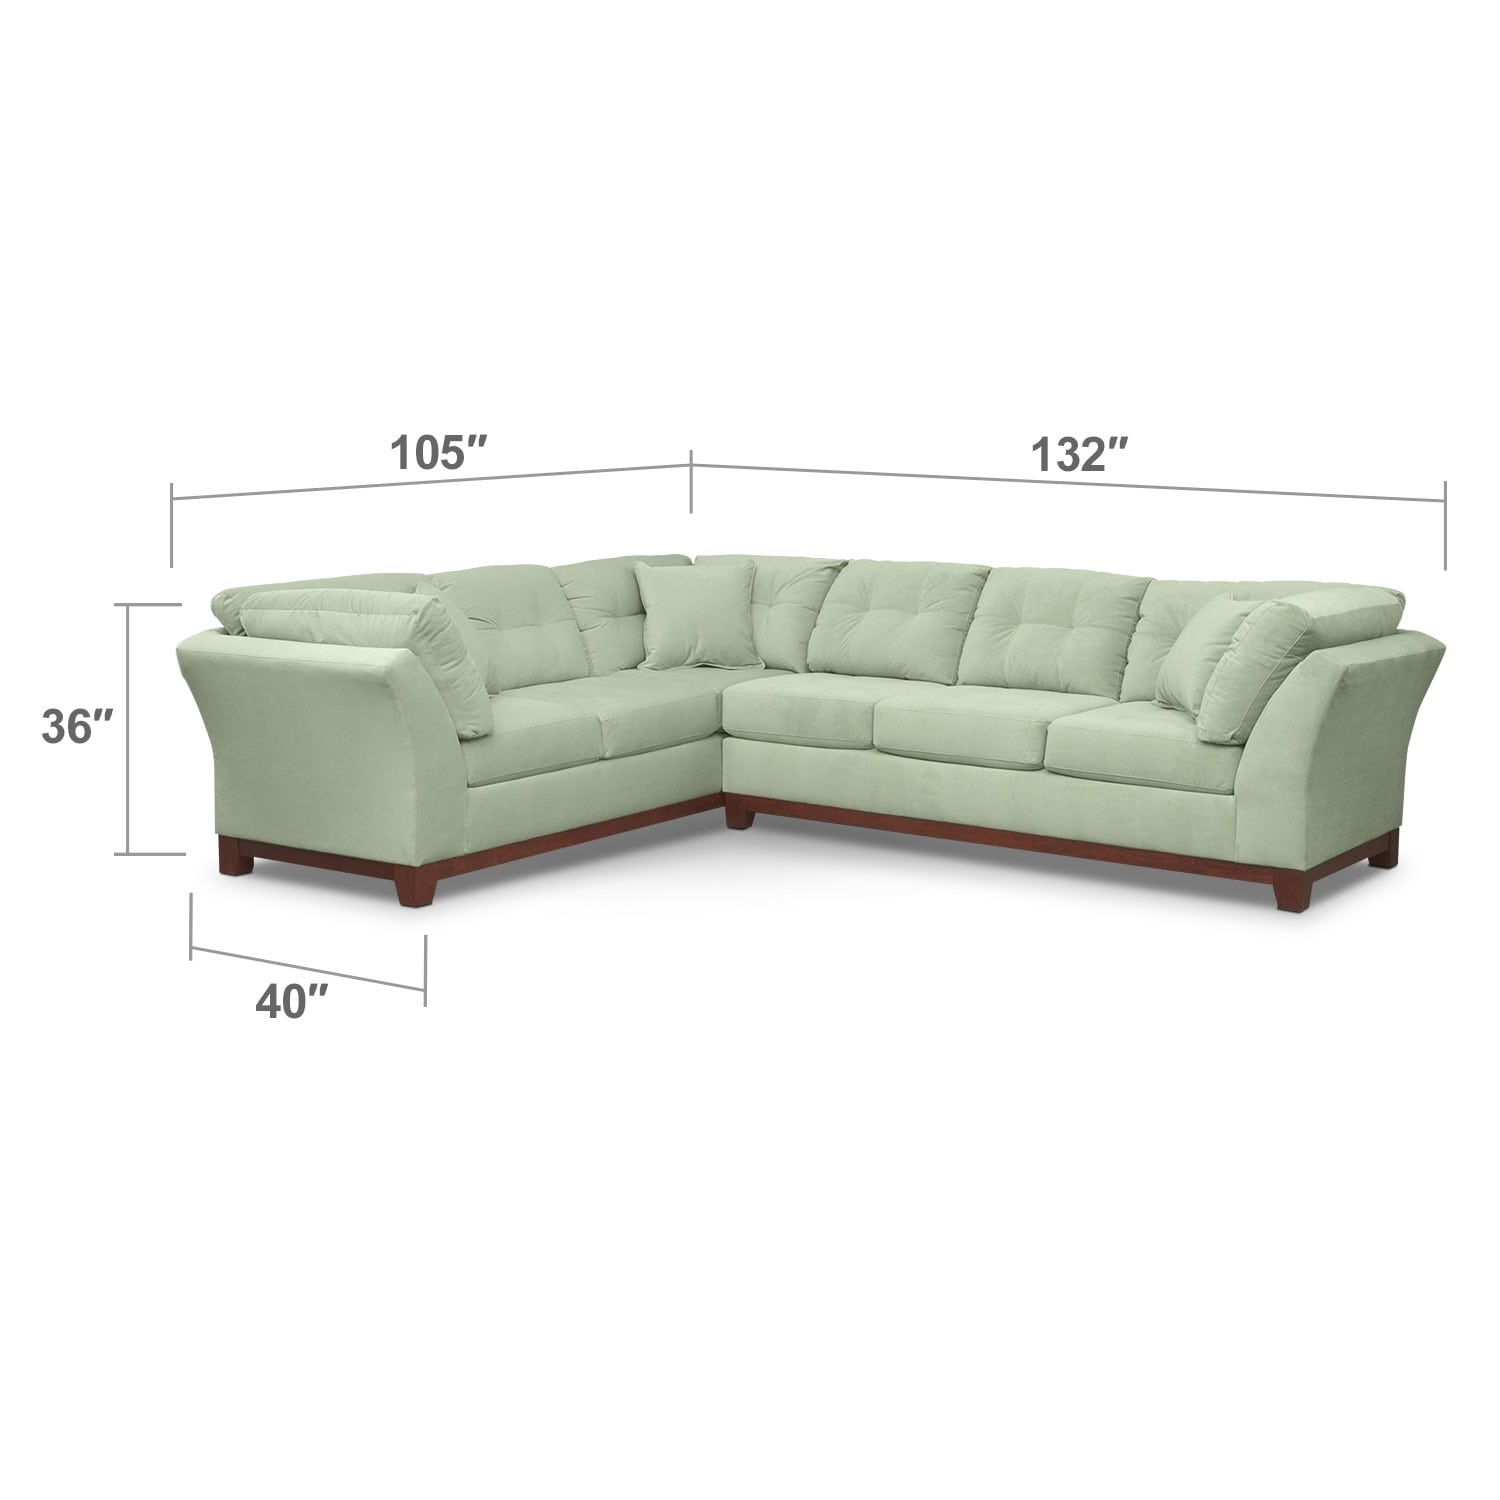 Living Room Furniture - Solace Spa II 2 Pc. Sectional